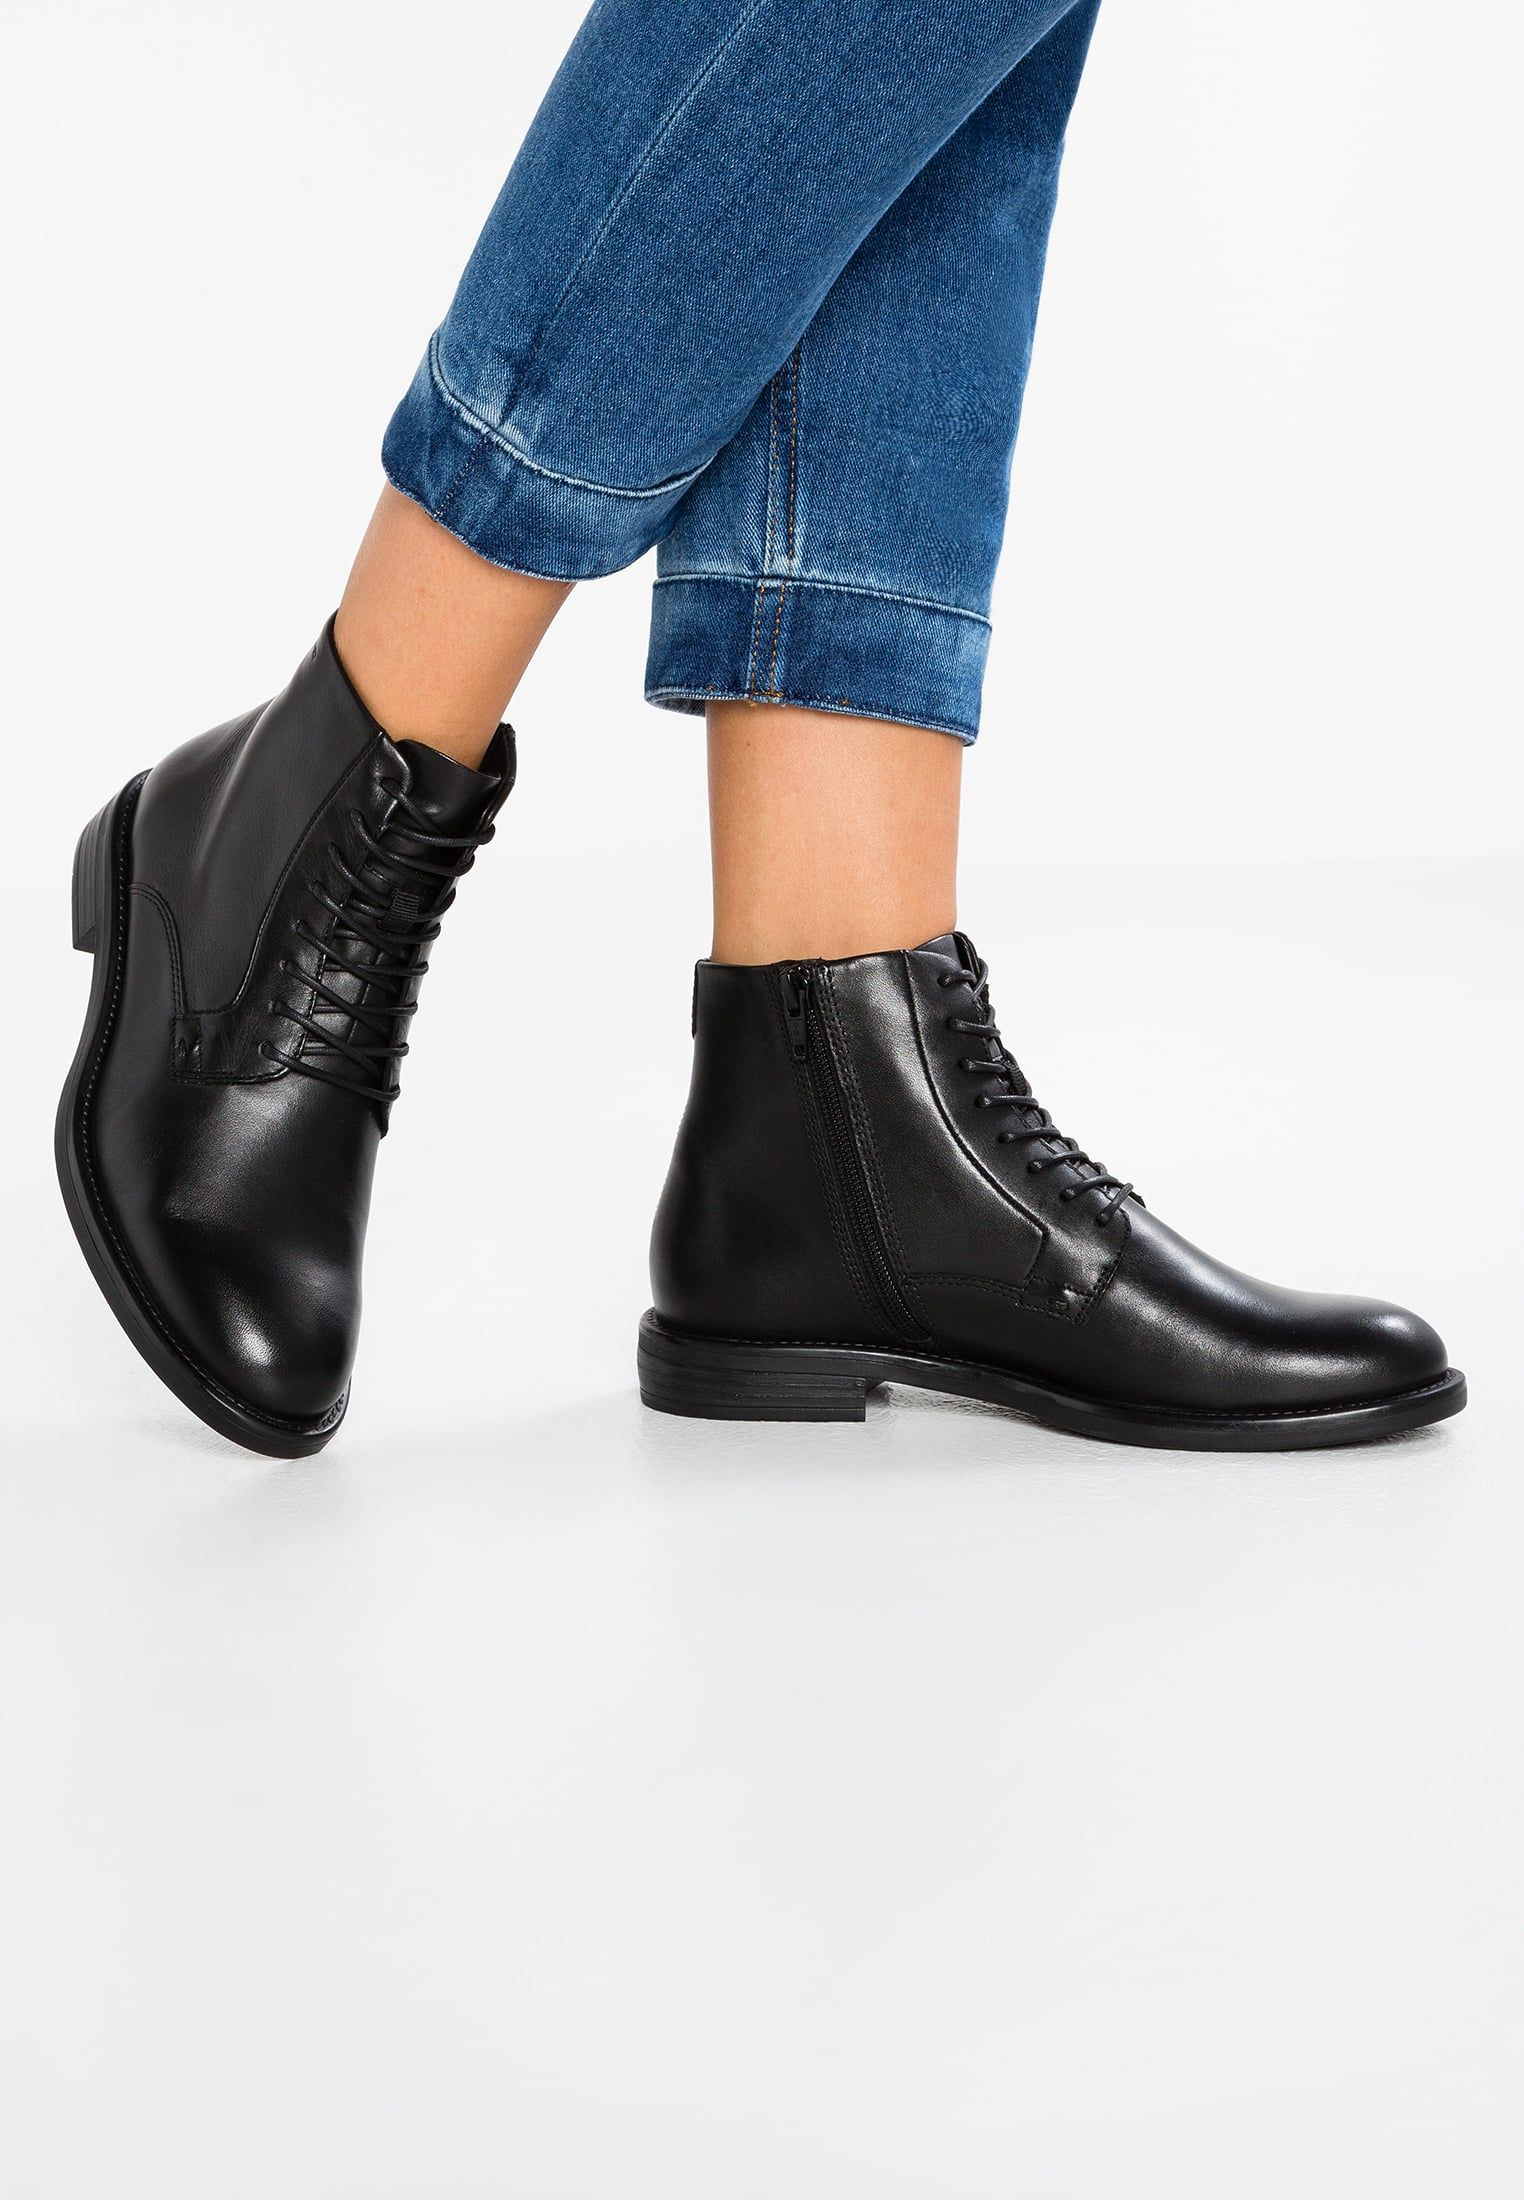 Vagabond AMINA Ankle Boots black Zalando.at | Zapatos